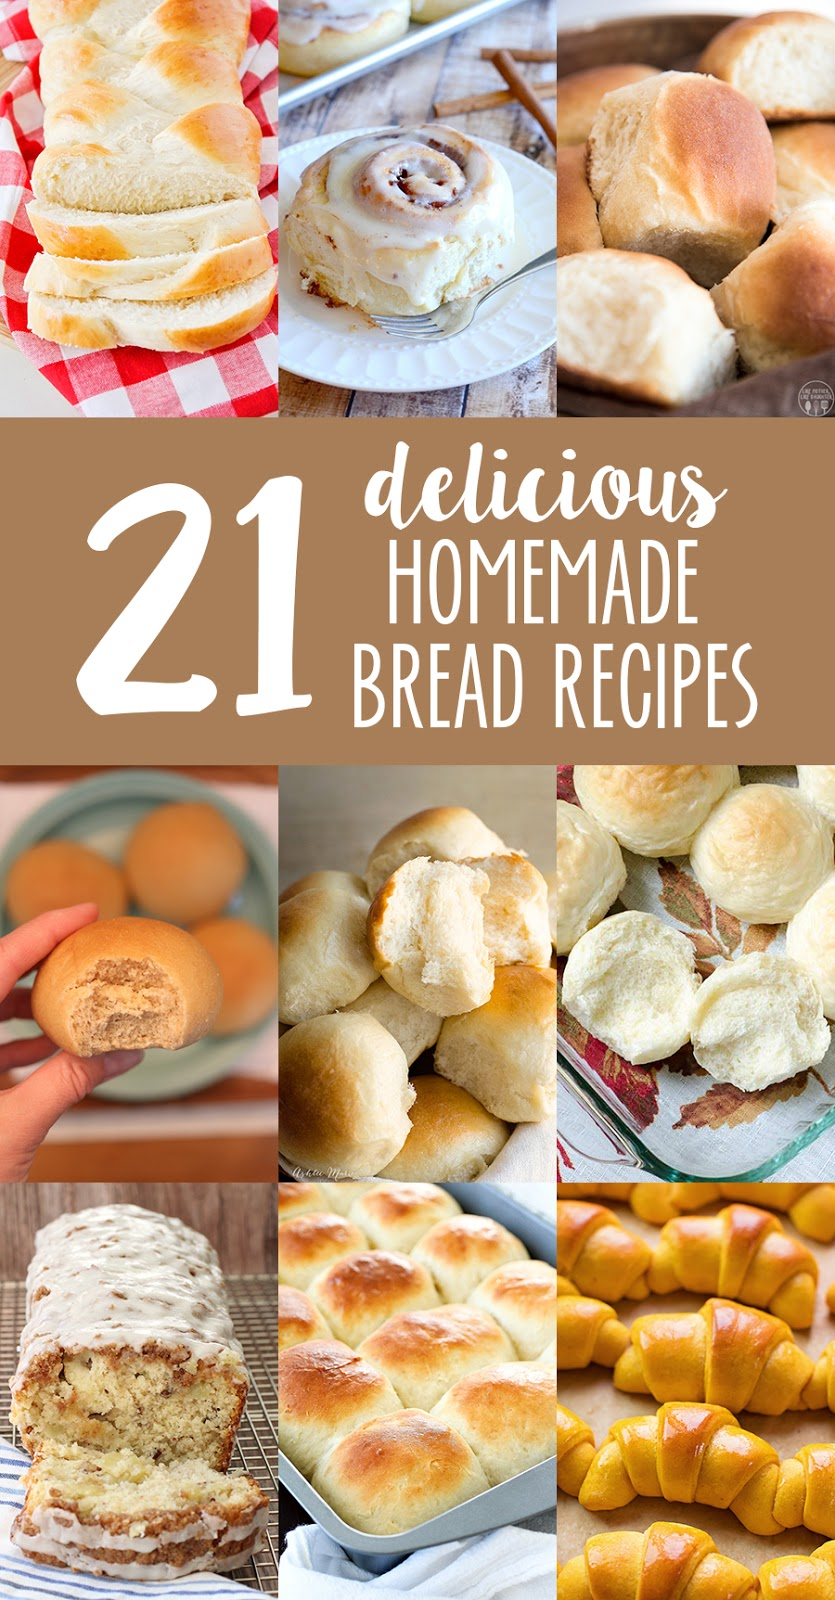 21 homemade bread recipes